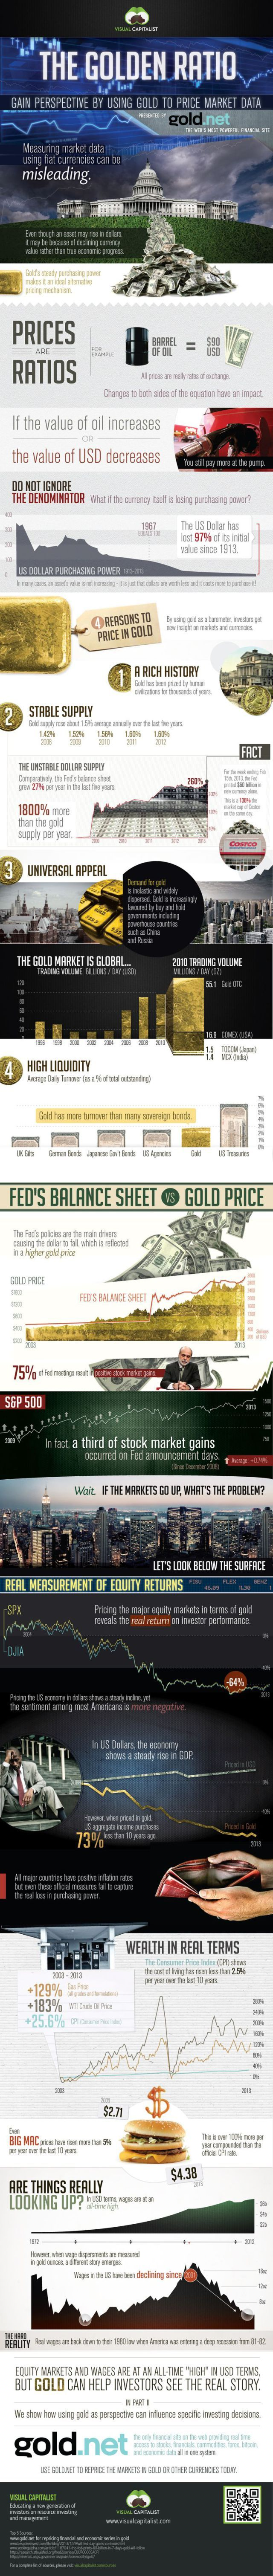 Trading infographic : Golden Ratio: Using Gold to Price Market Data.  Measuring market data using fiat